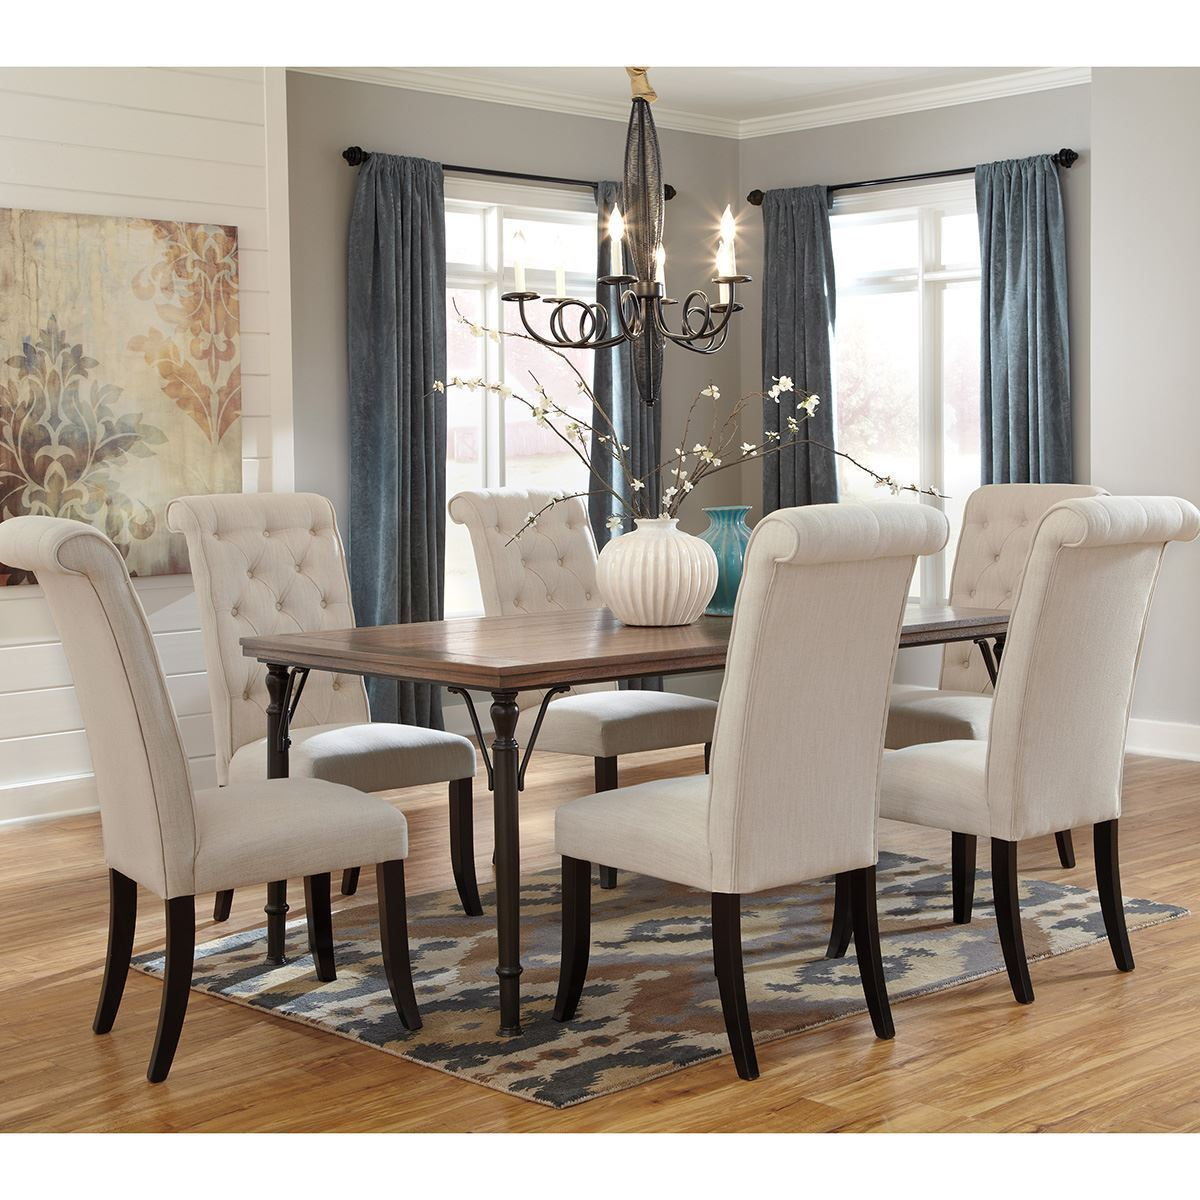 Emma Upholstered Dining Side Chair